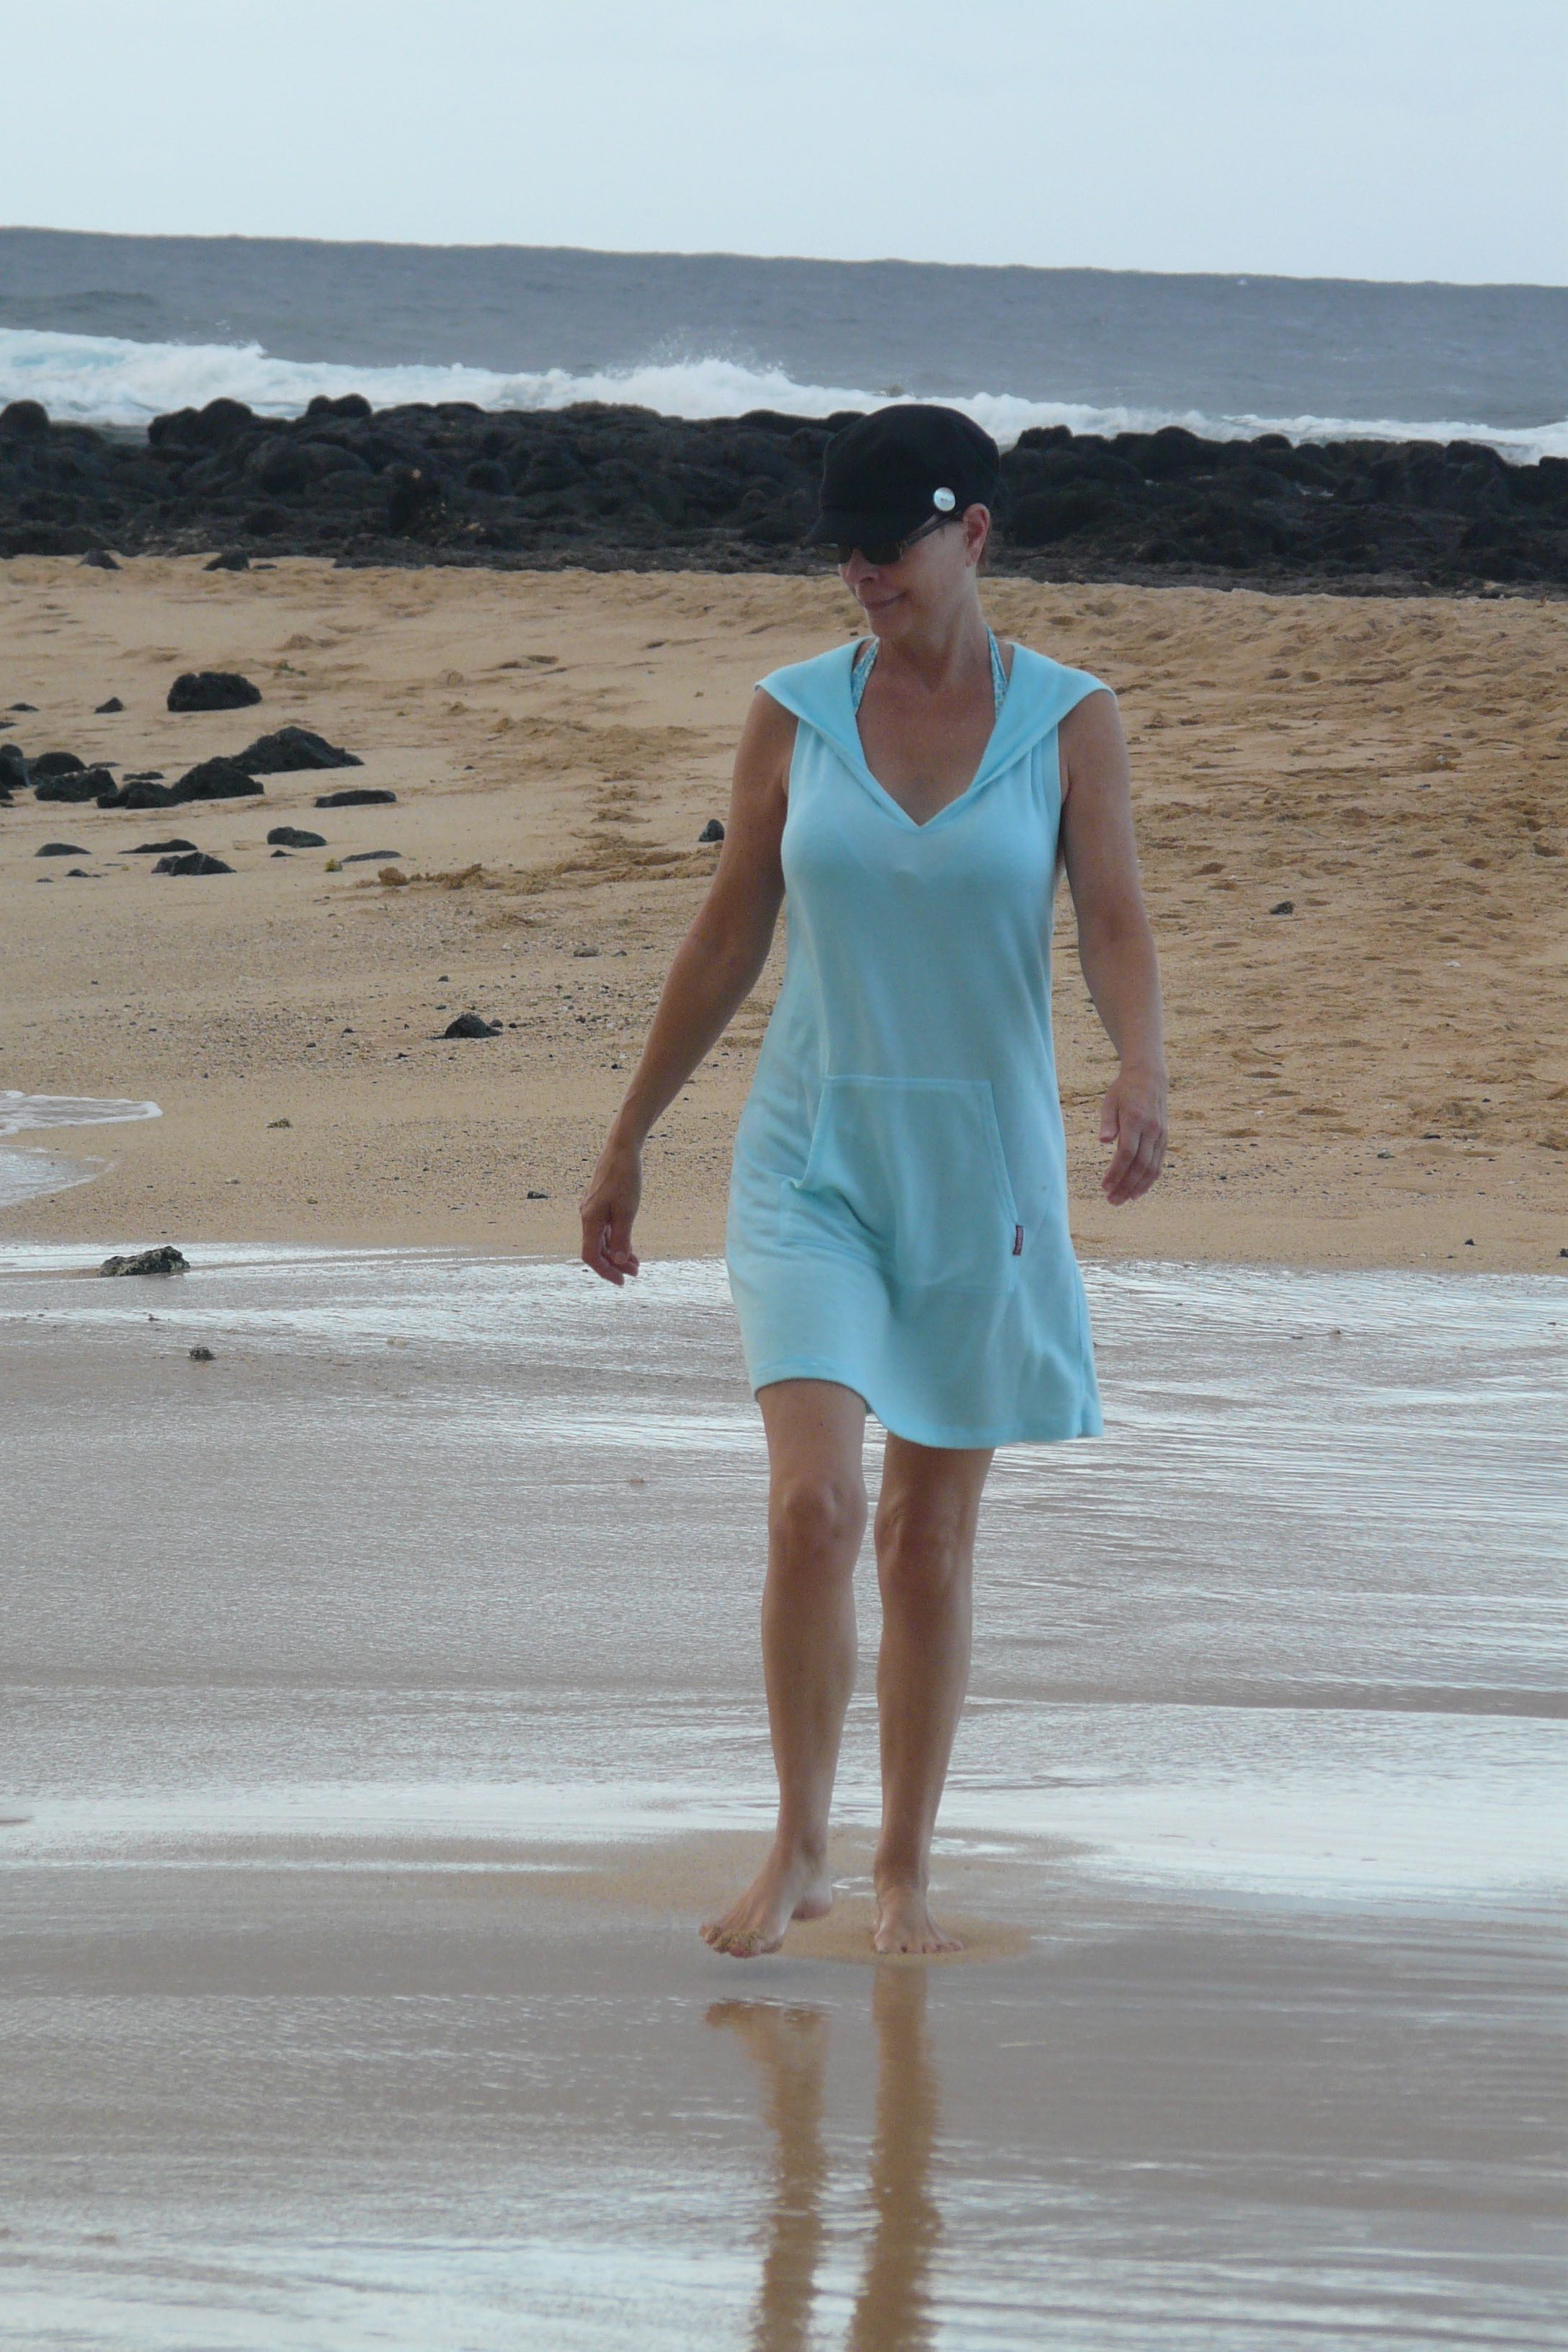 Kauai beach walk